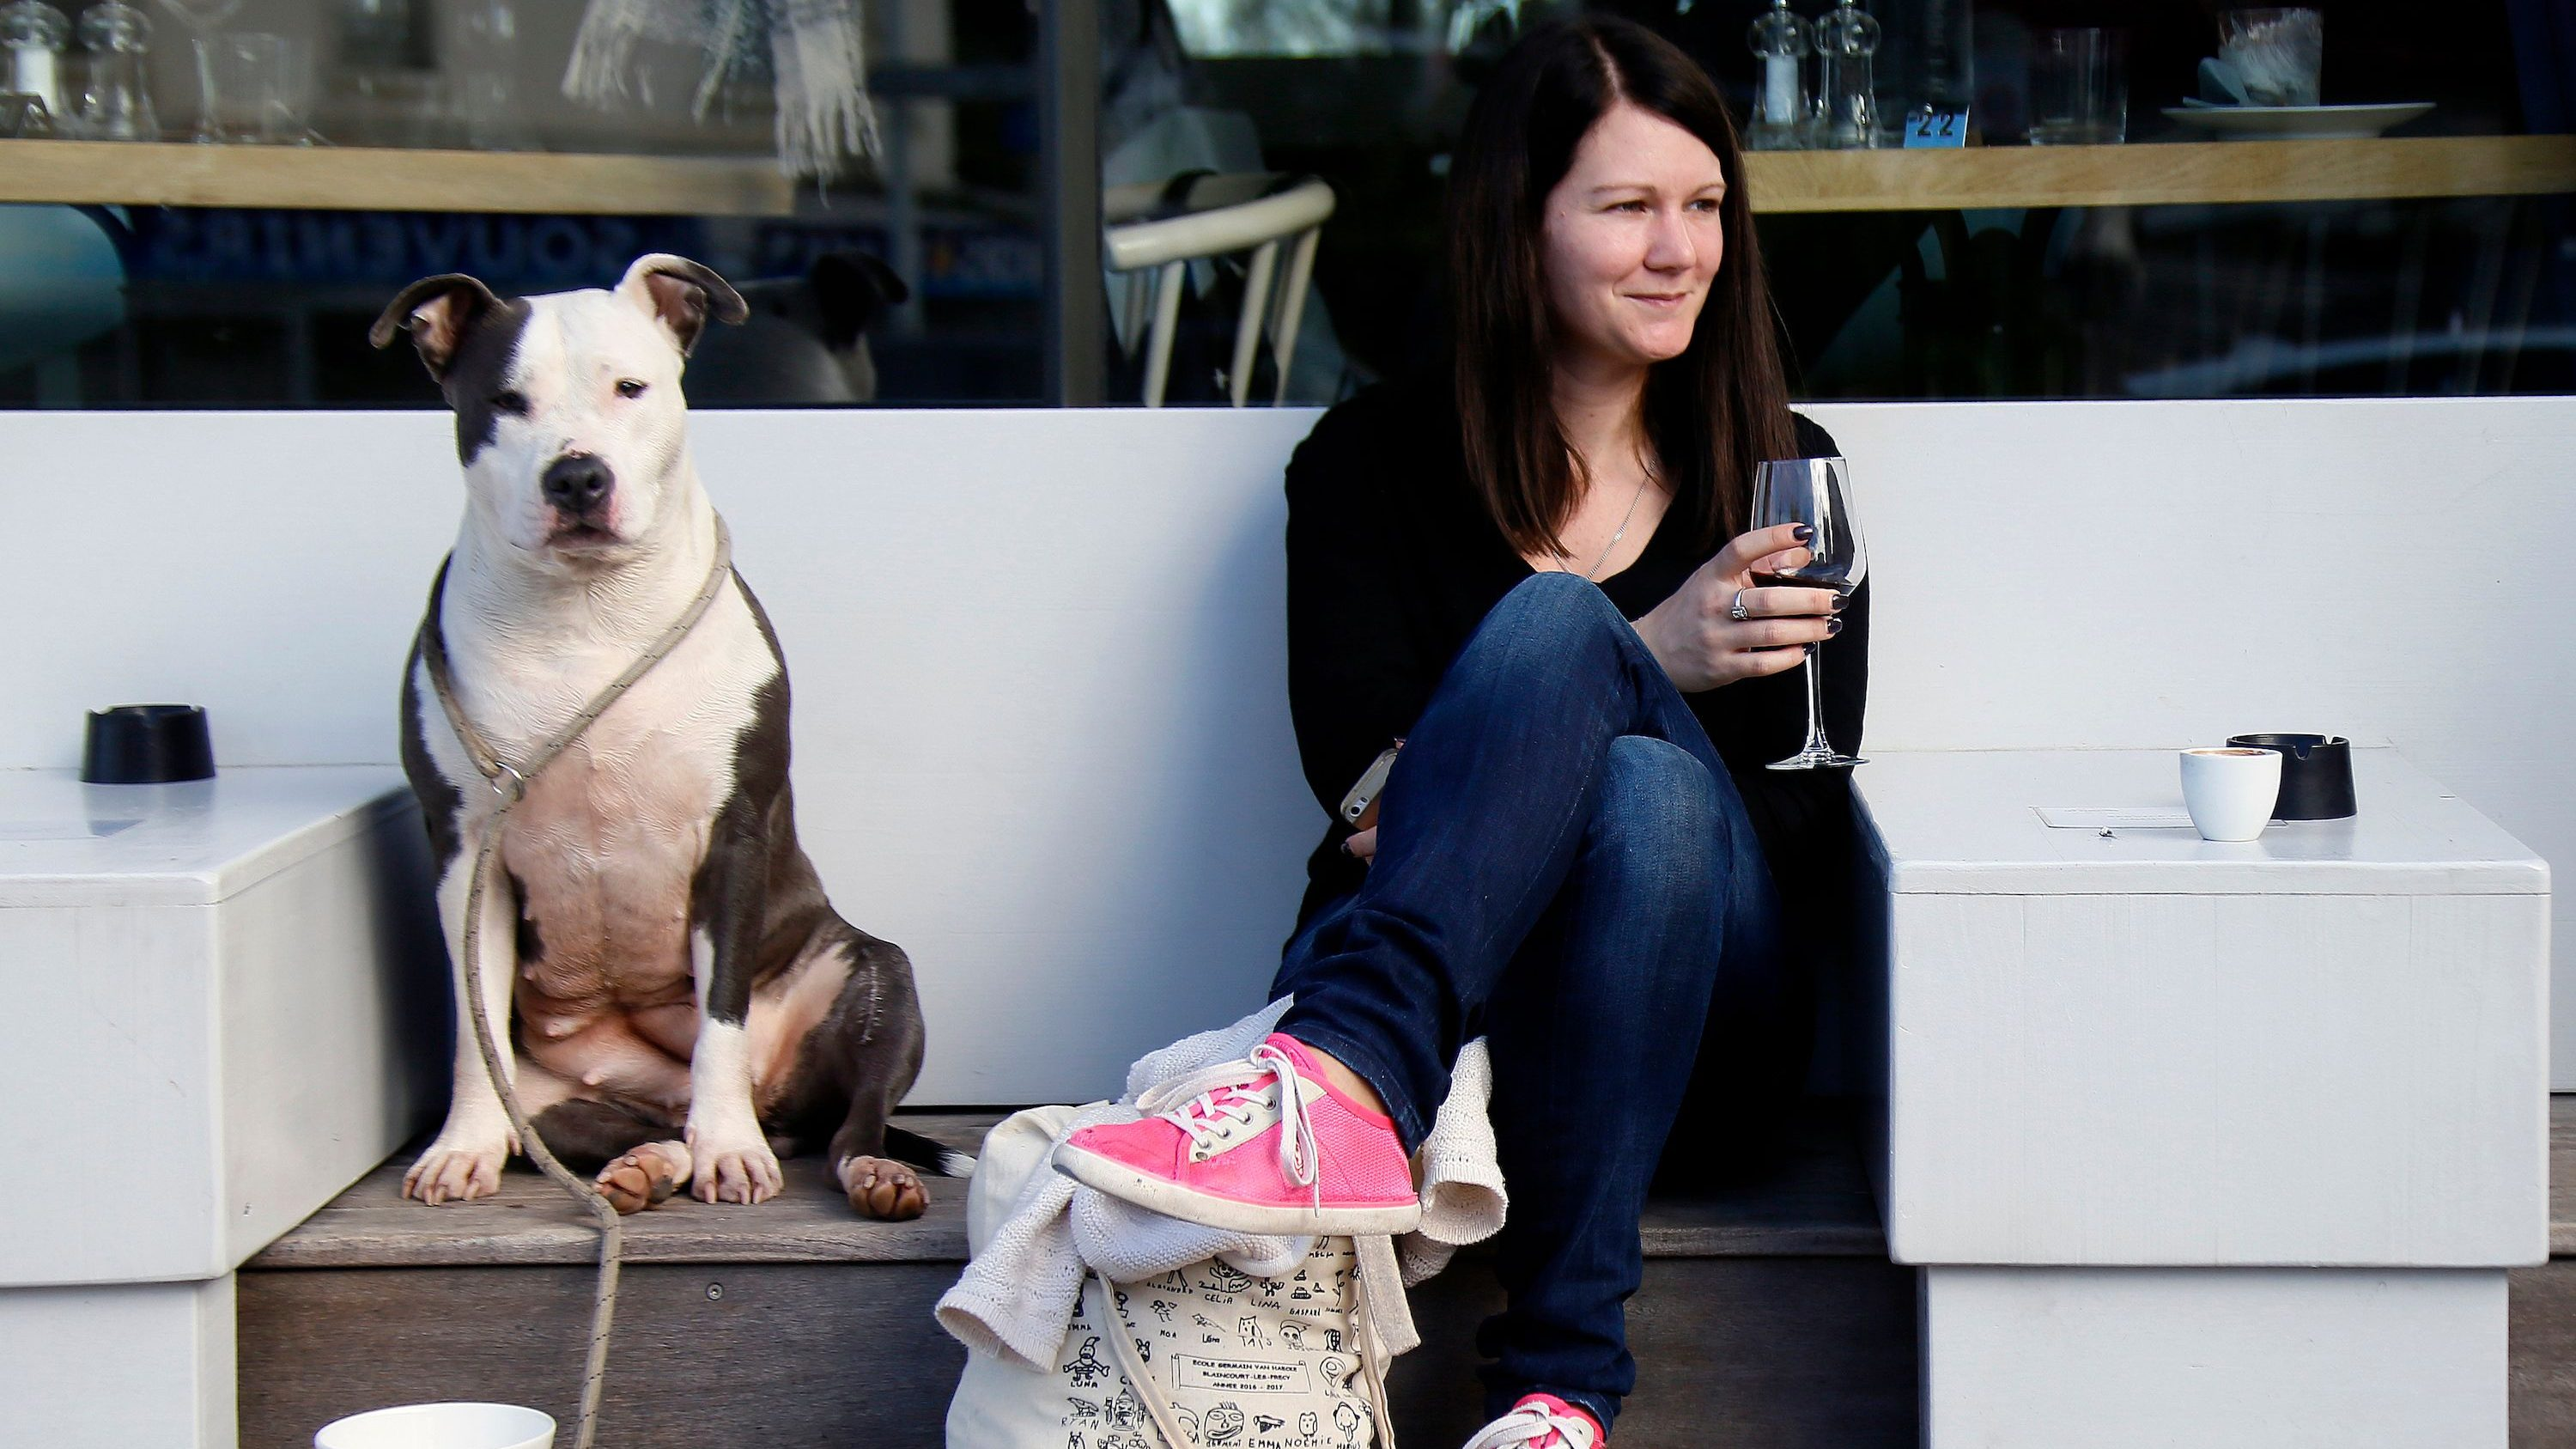 Emilie Liger, from Biarritz, drinks a glass of red wine accompanied by her dog Lara at the terrace of a restaurant in Biarritz, southwestern France, Thursday, Fev.15, 2018. Temperatures in southwestern France reached 19 degrees Celsius (66,2 Fahrenheit).